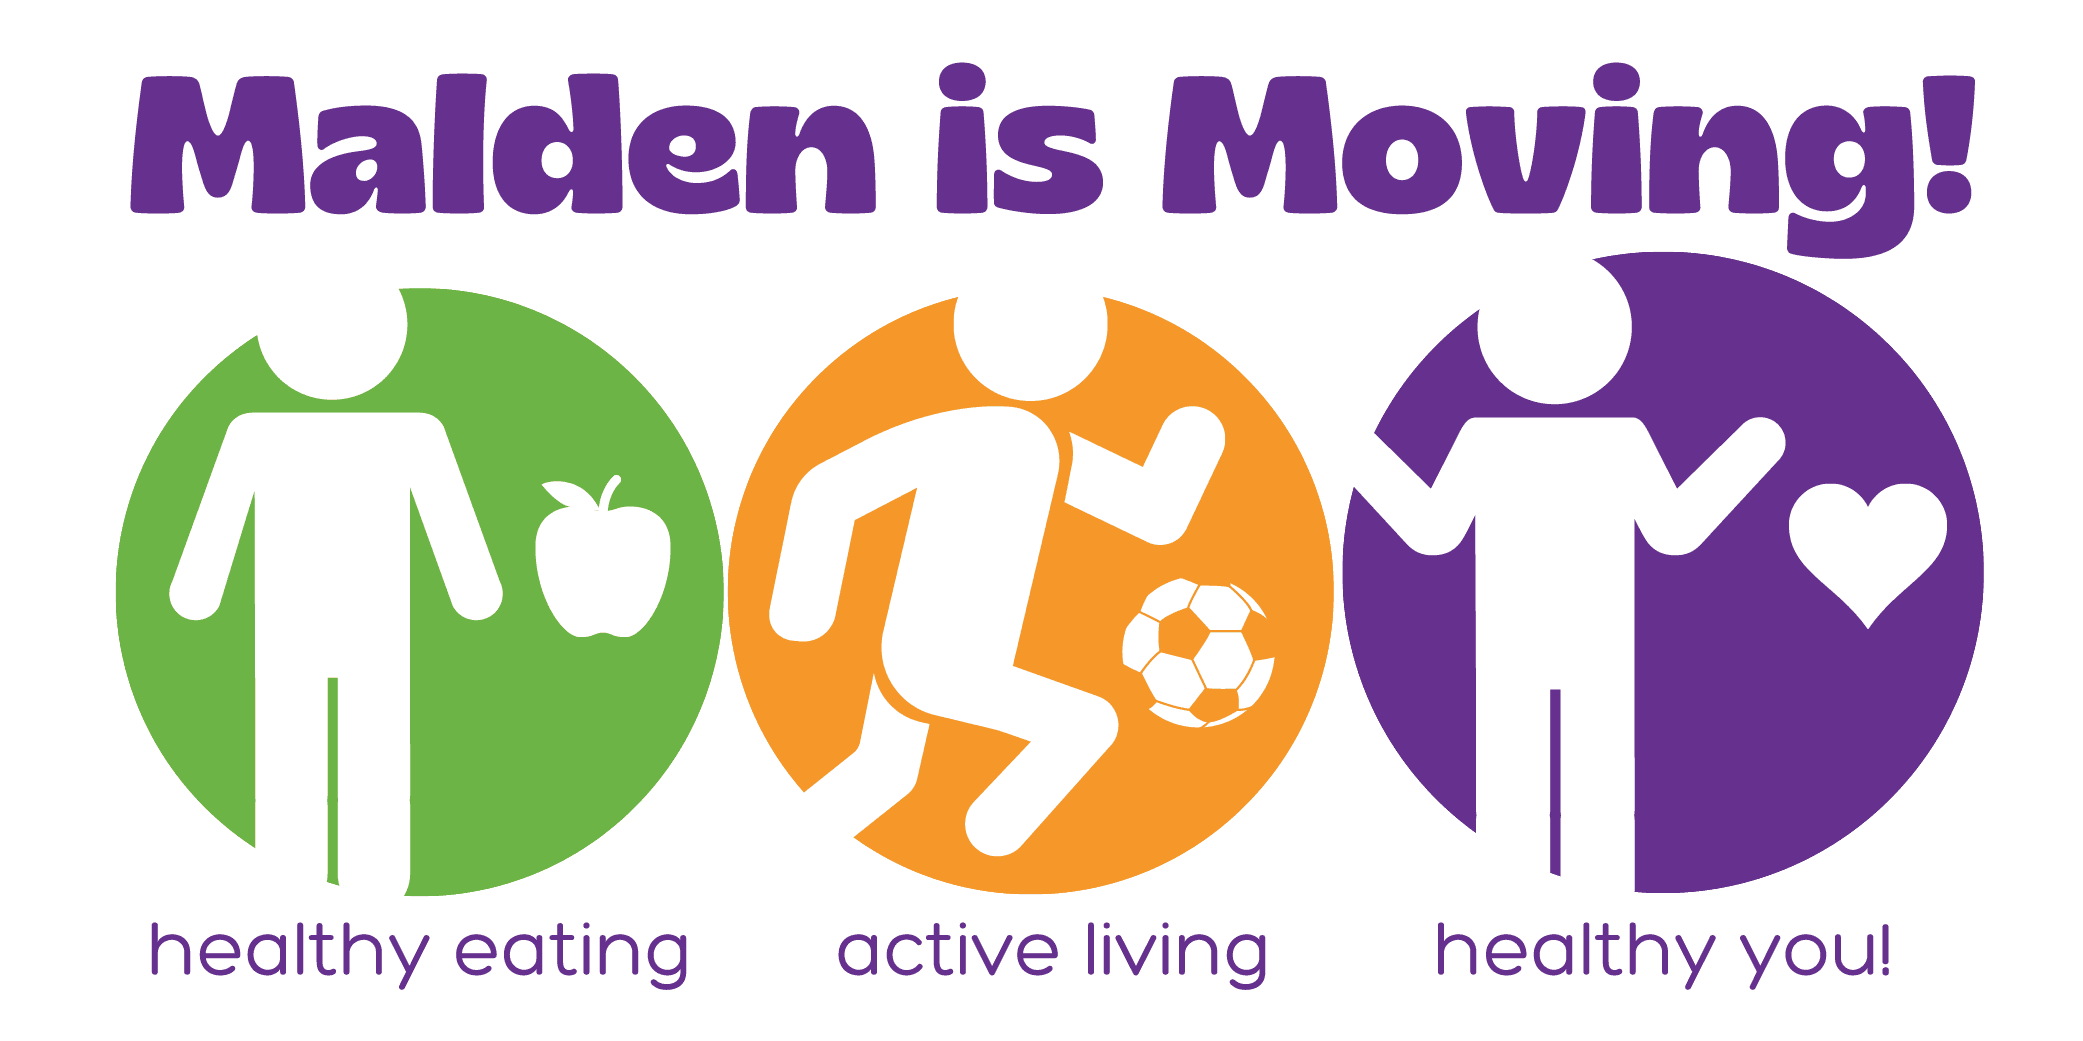 Malden Is Moving - Healthy Eating plus Active Living Equals Healthy You - Mass in Motion